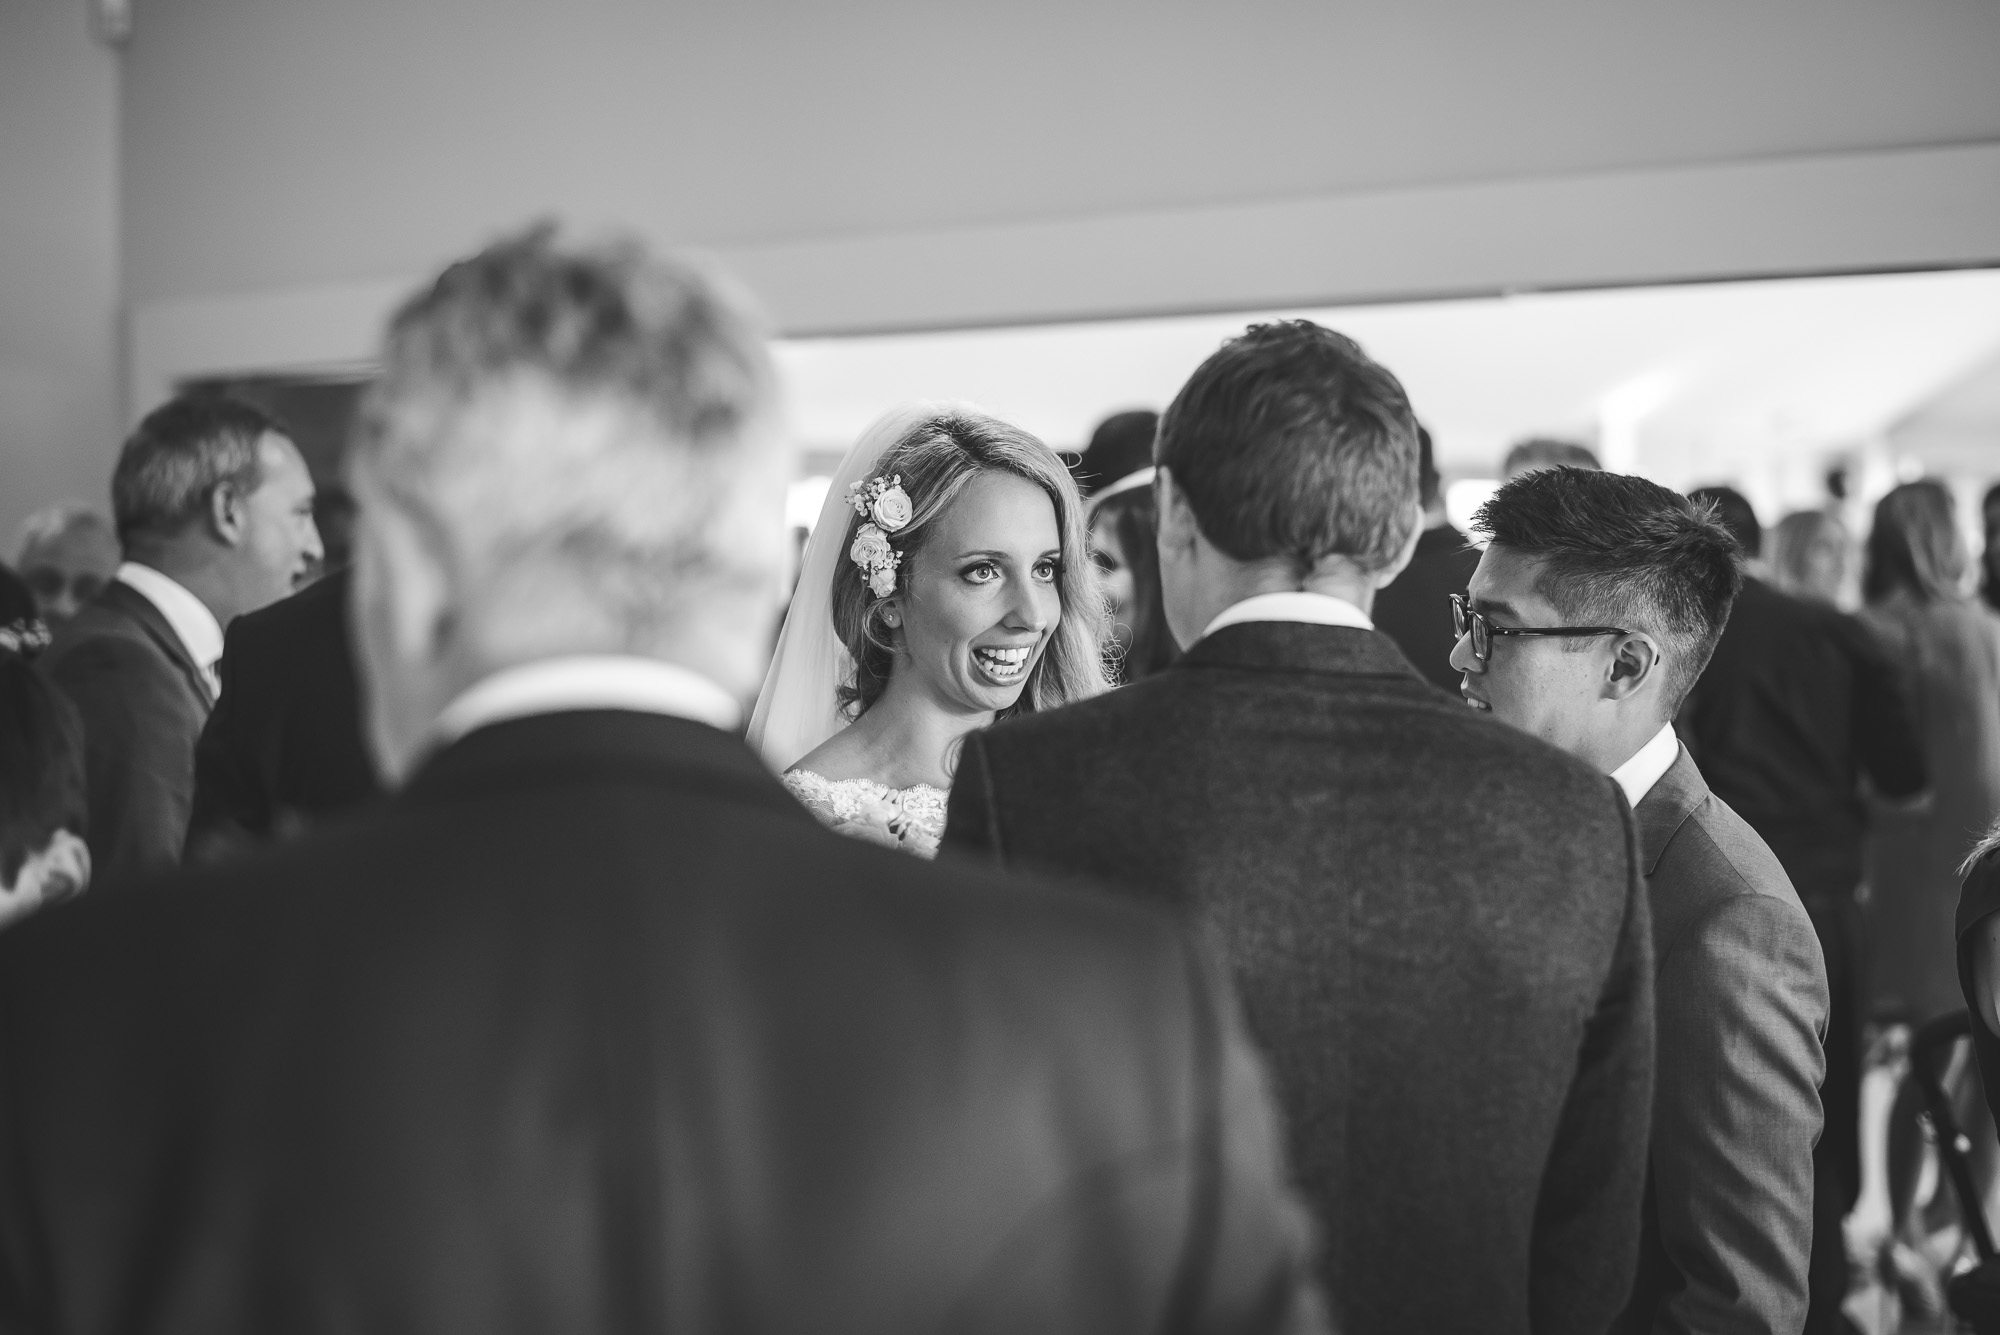 Suzanne and Wayne - - Wasing Park wedding photography (94 of 175)